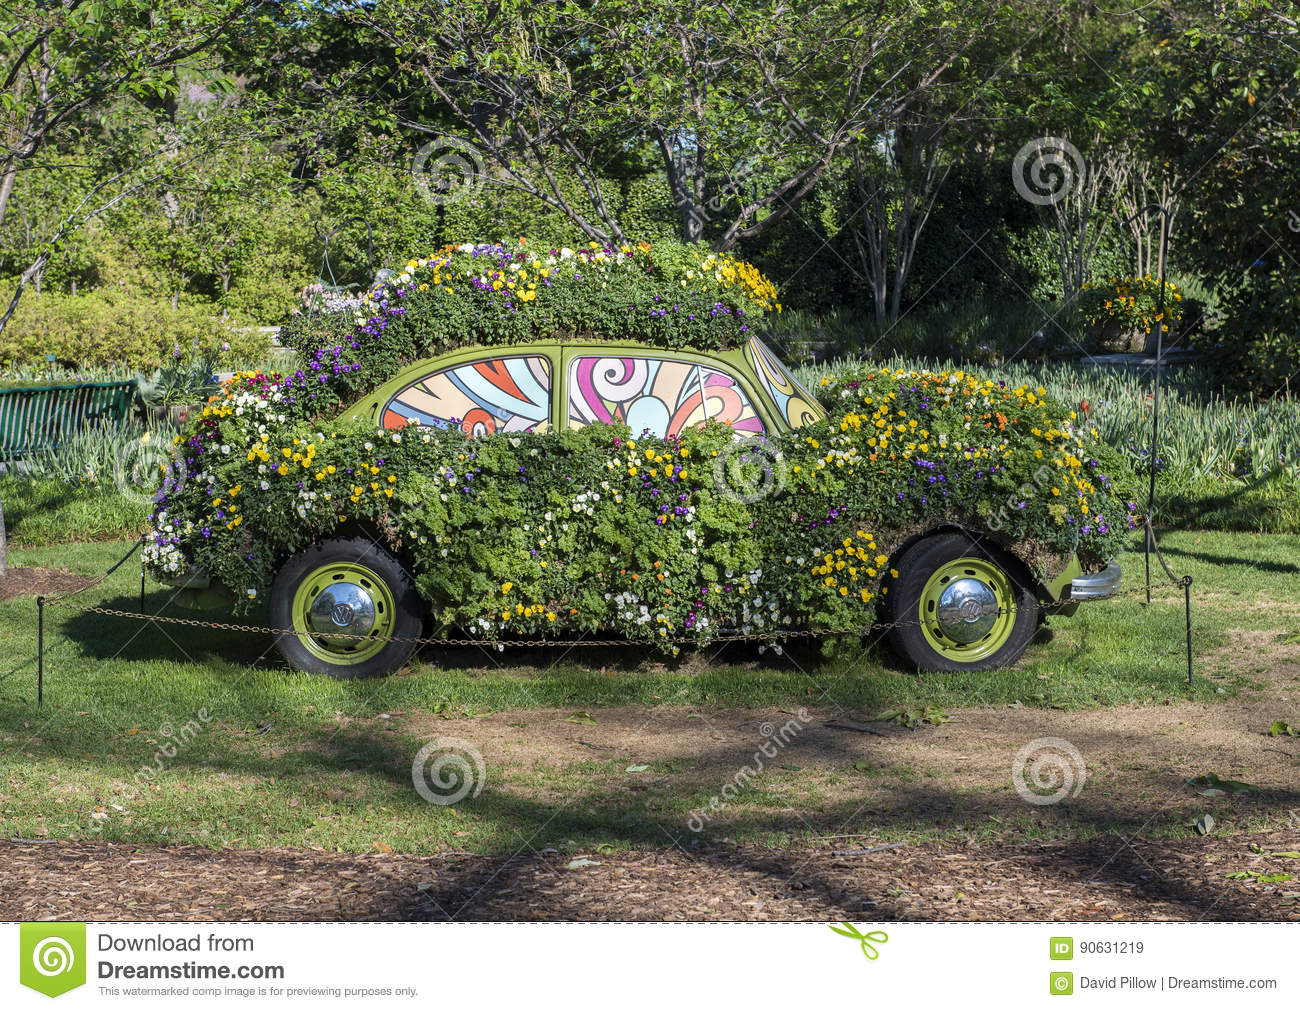 An old Volkswagen bug is covered with pansies at the Dallas Arboretum